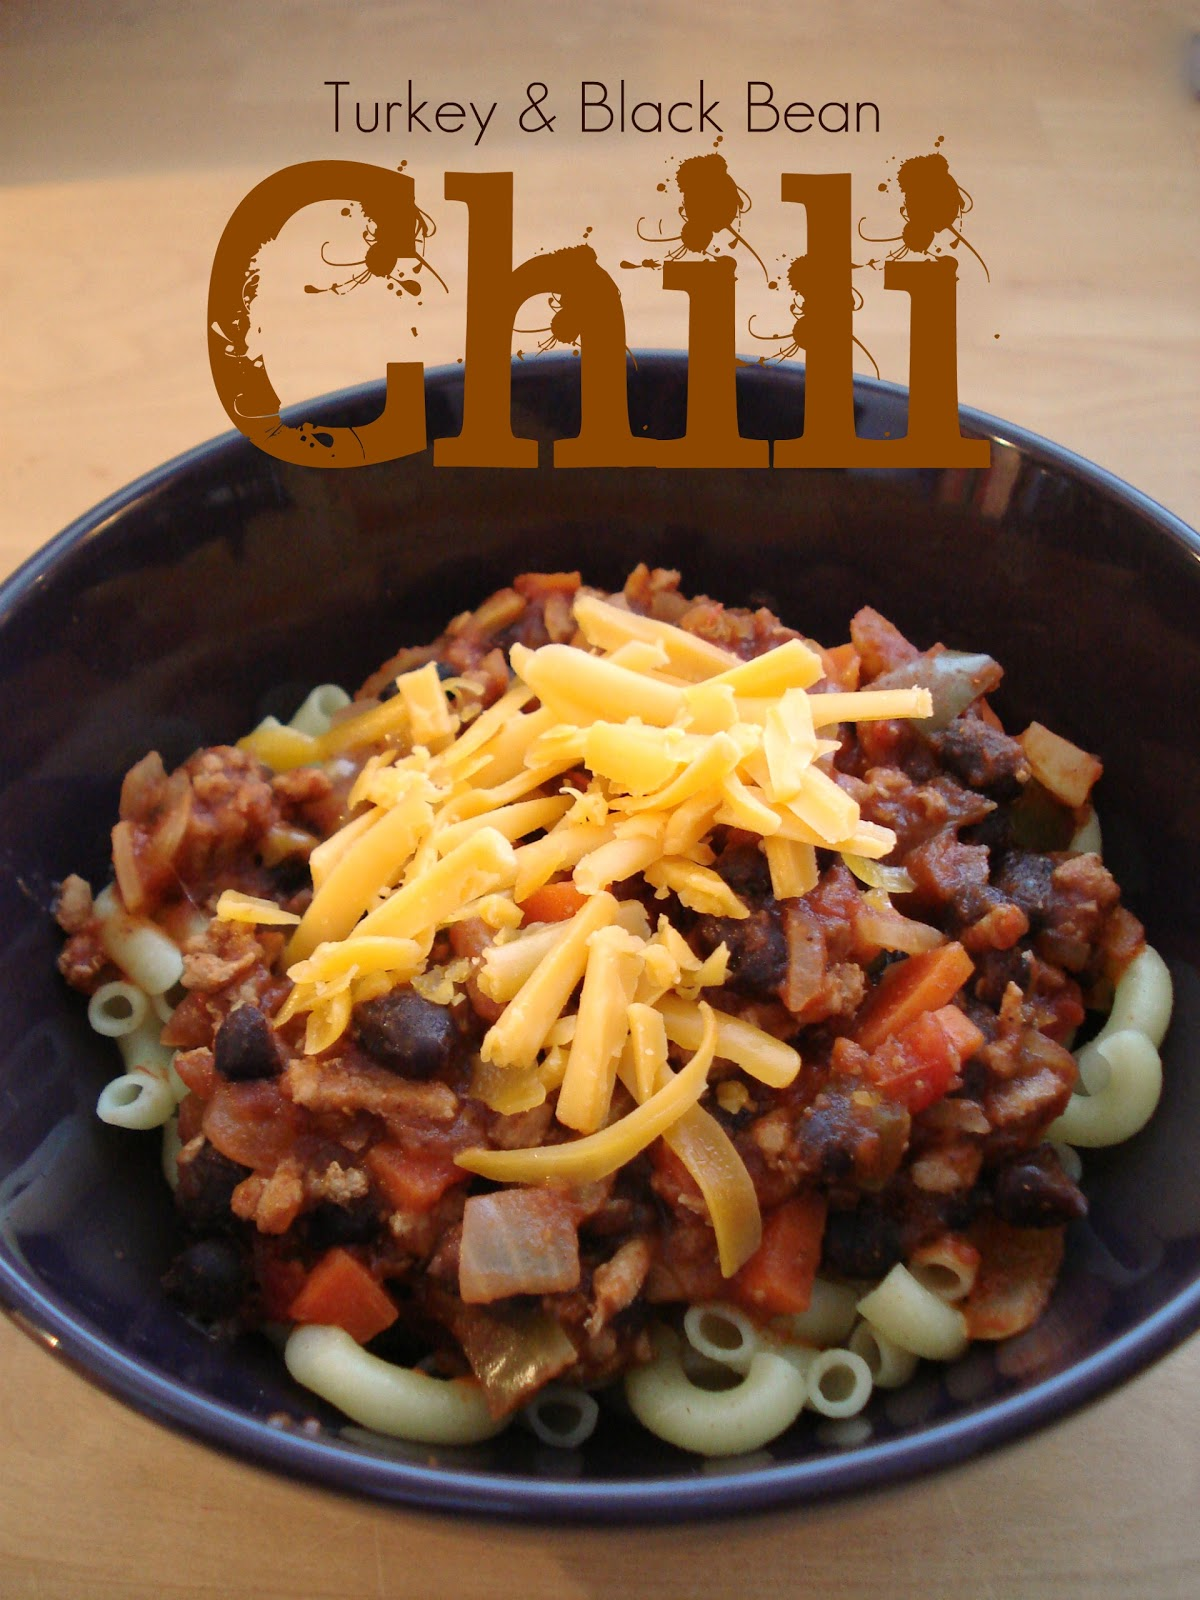 Silver Boxes: Turkey & Black Bean Chili